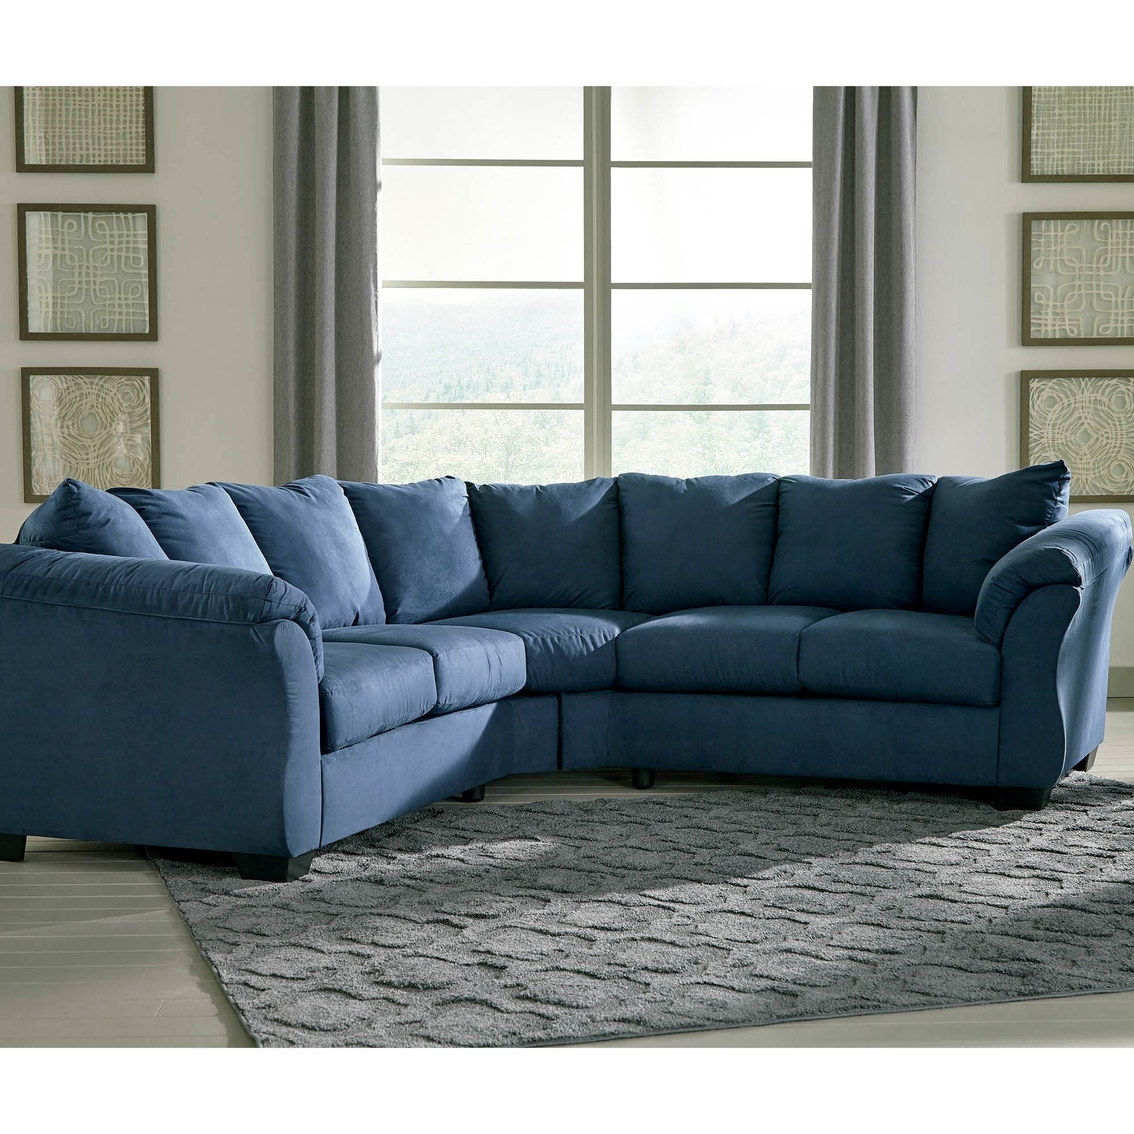 Sensational Signature Design By Ashley Darcy 2 Pc Sectional Sofas Cjindustries Chair Design For Home Cjindustriesco